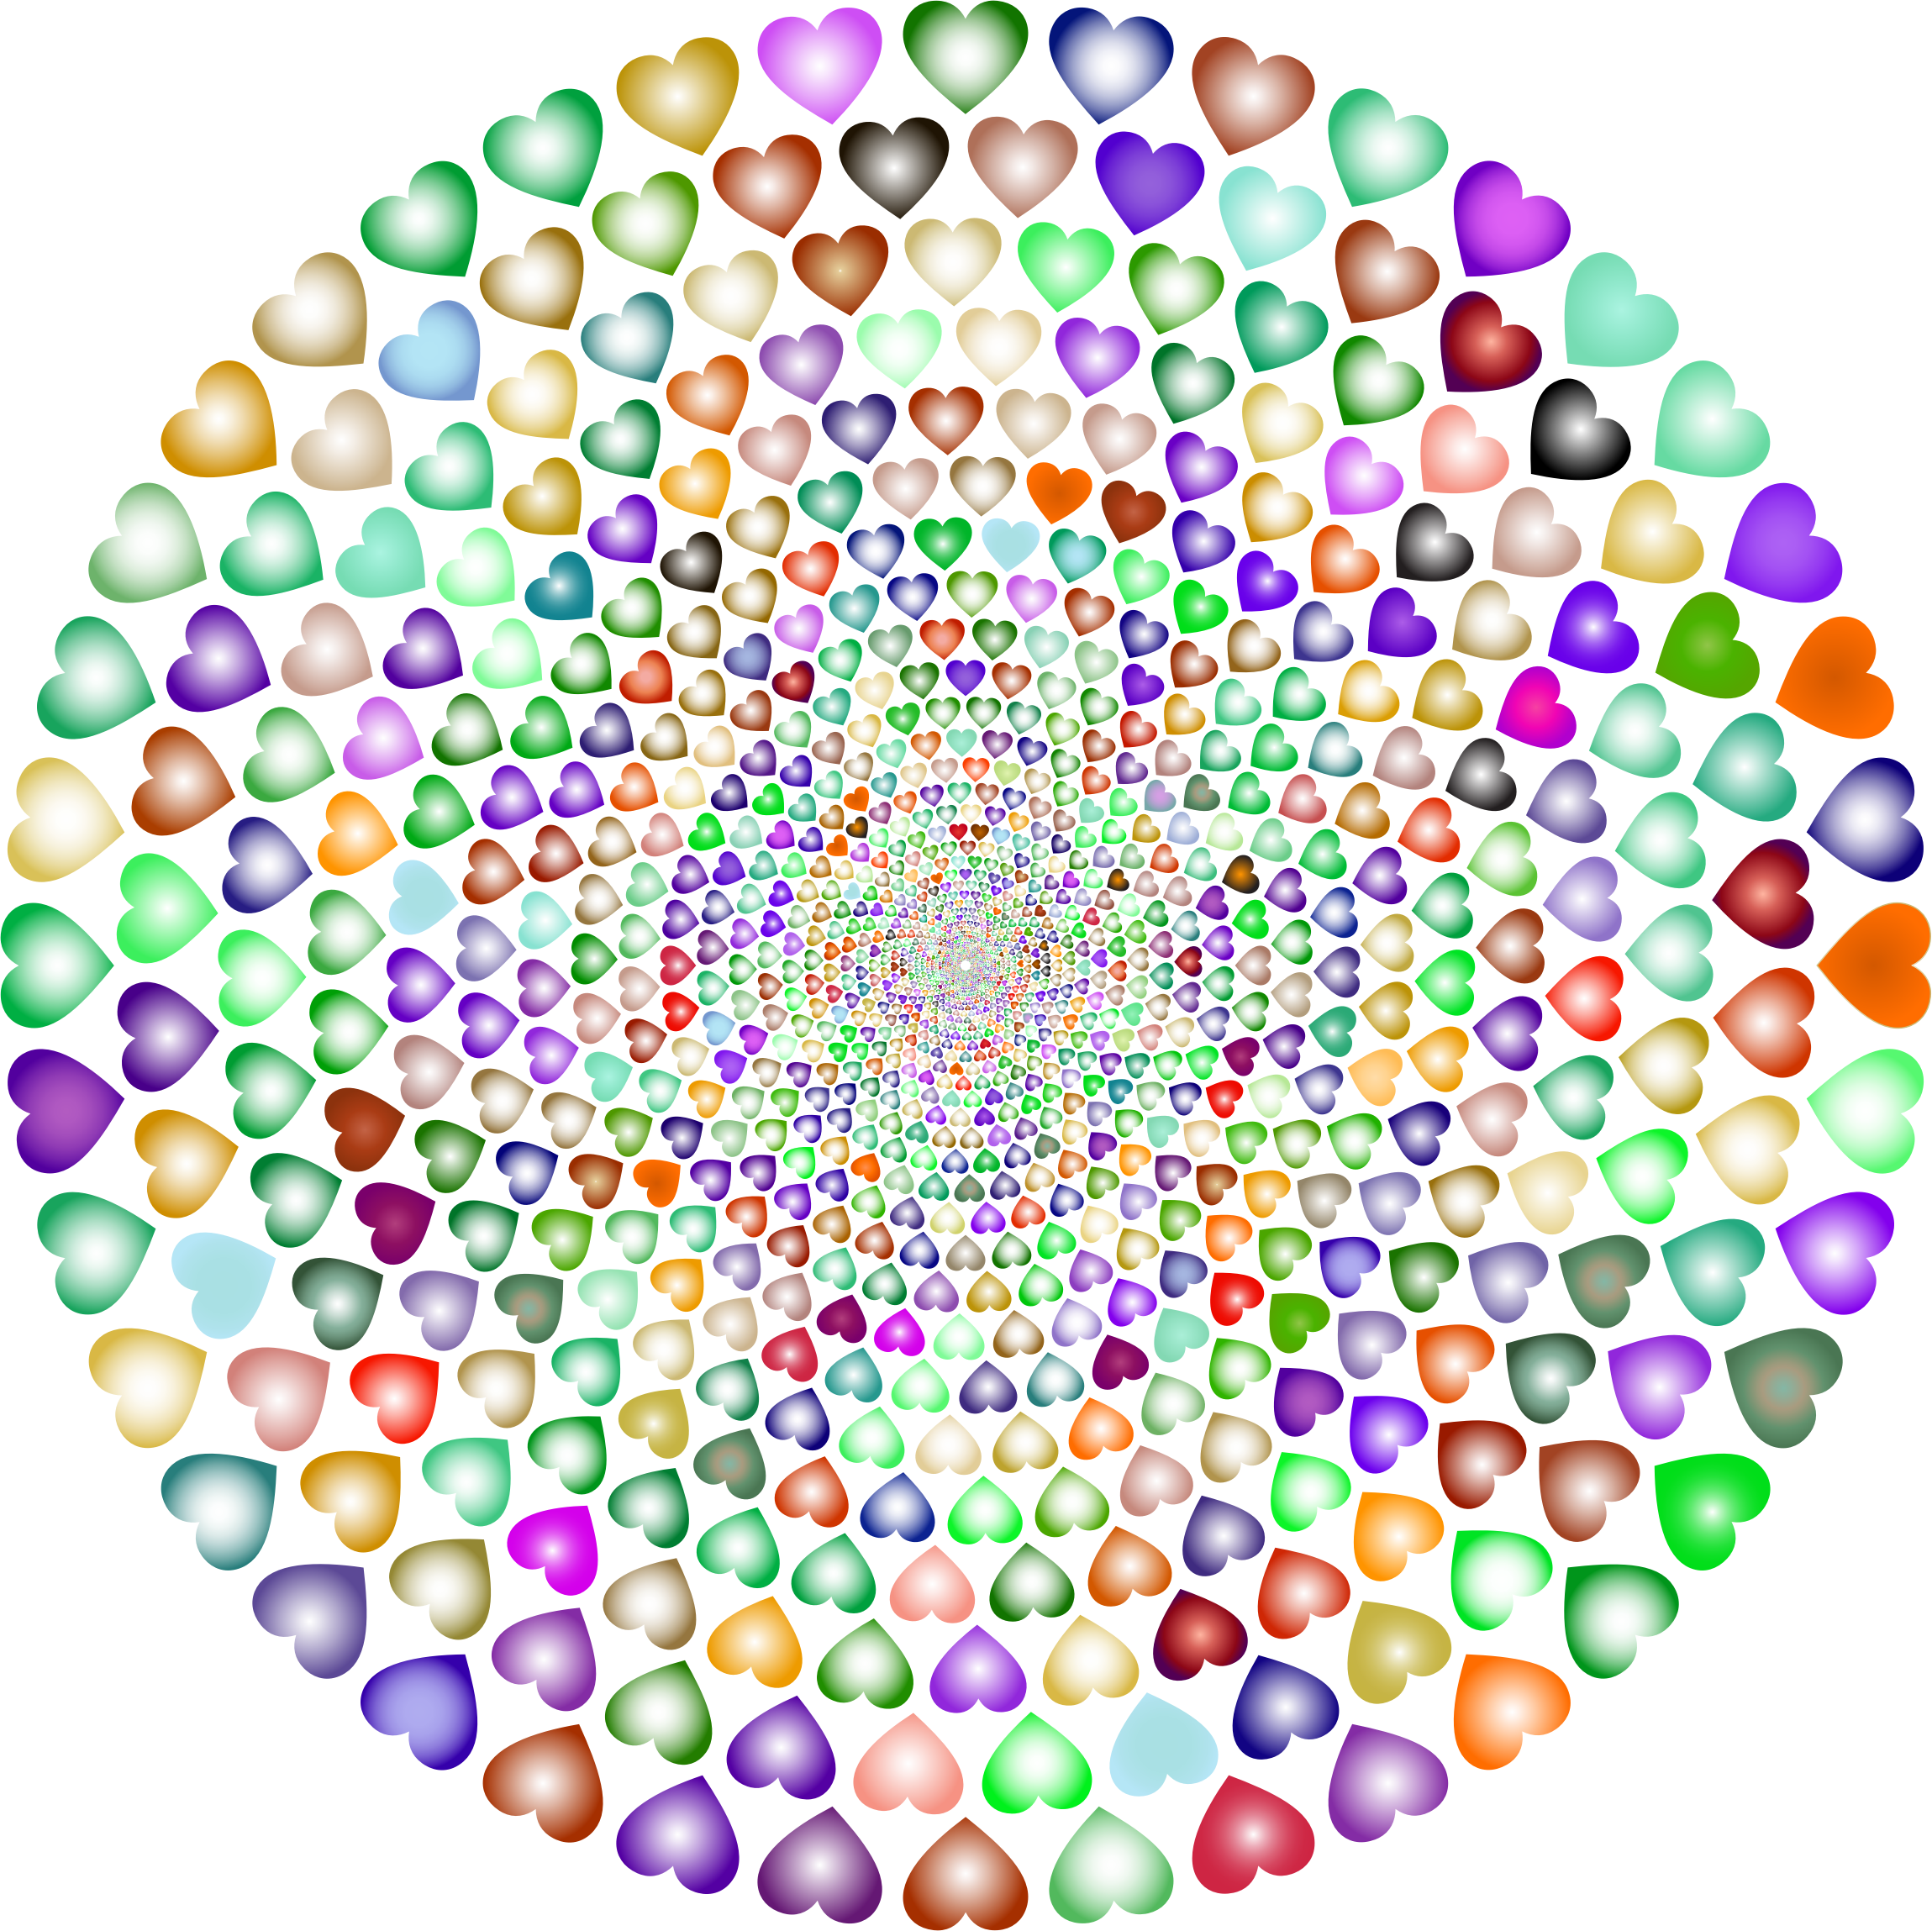 Colorful Hearts Vortex 6 by GDJ